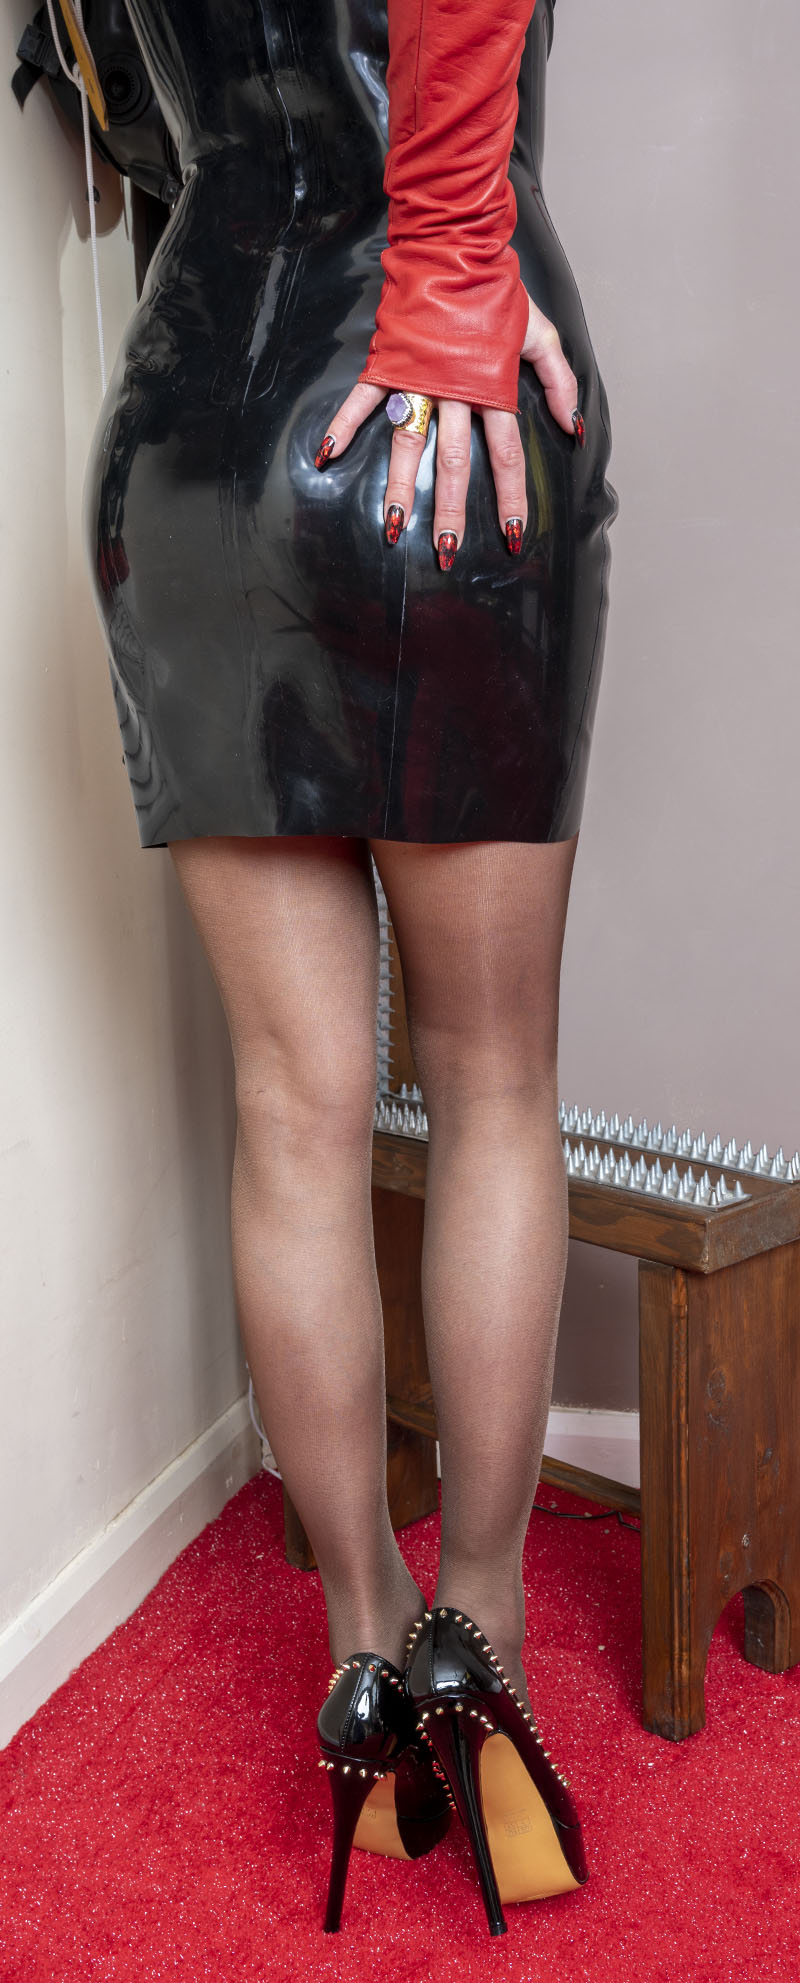 west-midlands-mistress_2362